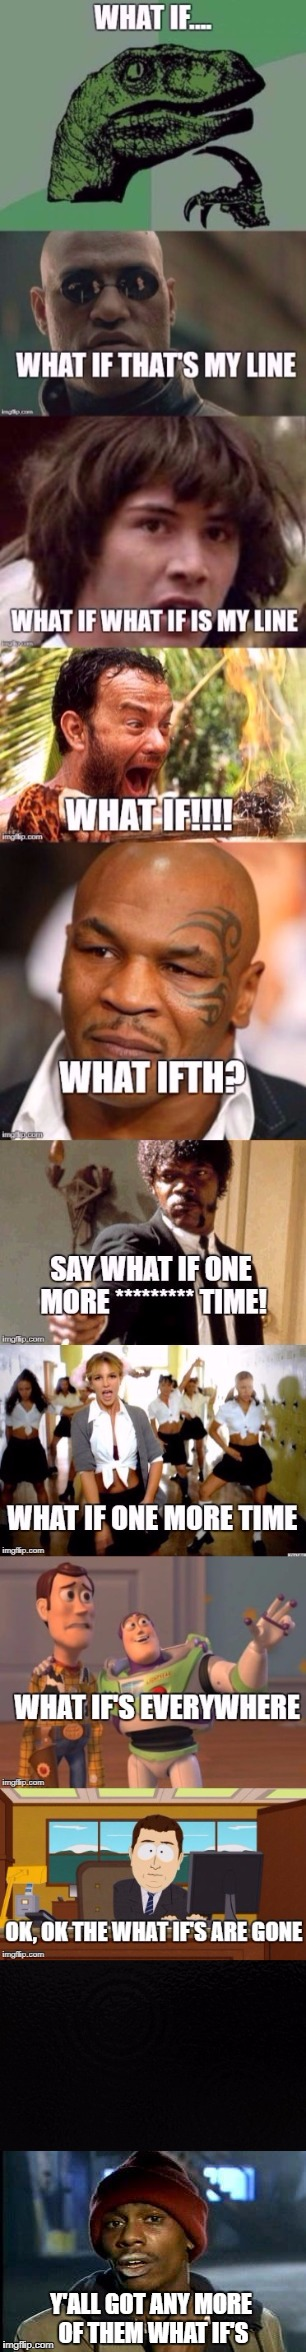 WHAT IF?!?!?!?! | Y'ALL GOT ANY MORE OF THEM WHAT IF'S | image tagged in wtf | made w/ Imgflip meme maker